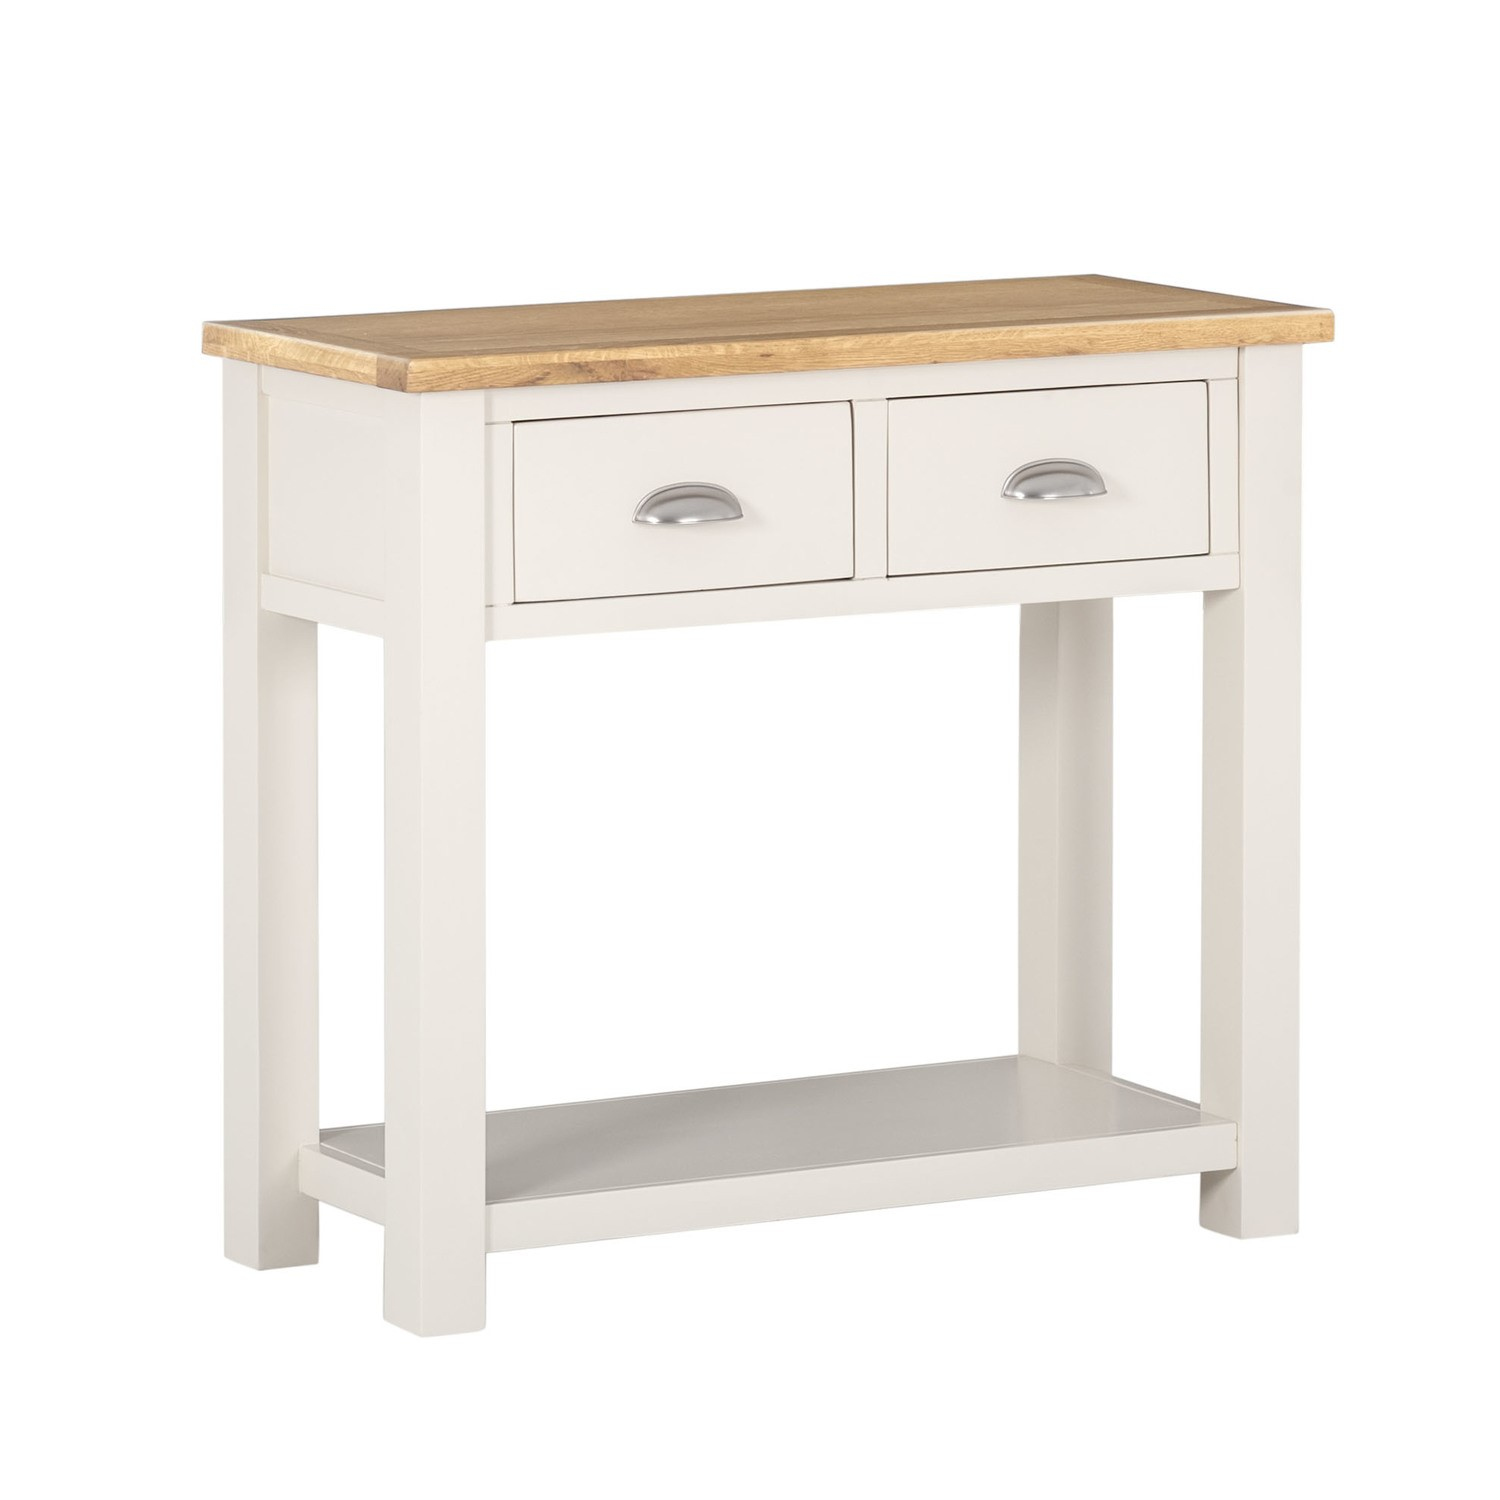 willow farmhouse console table with storage drawers cream oak rh furniture123 co uk